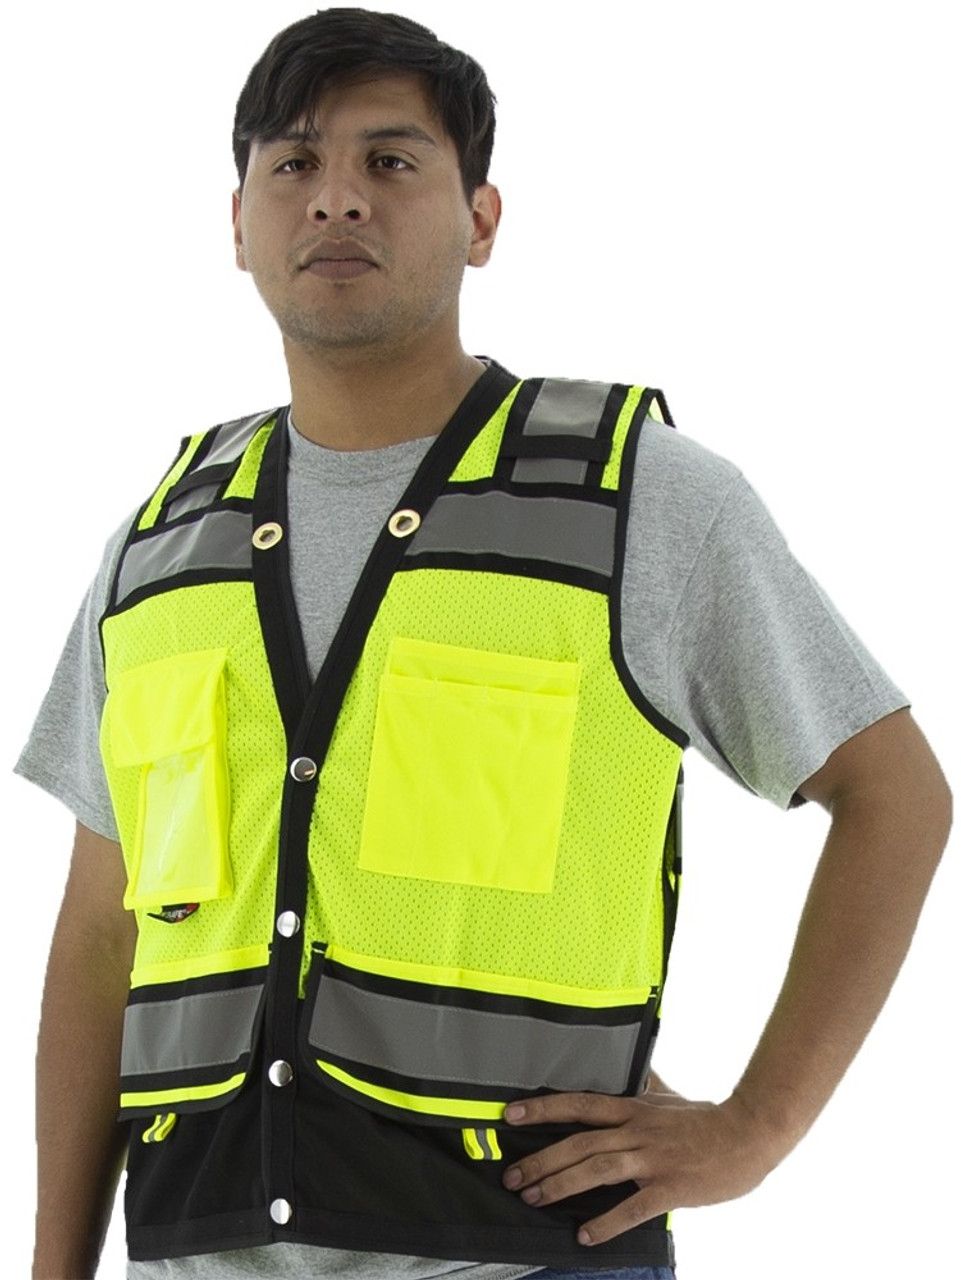 HIGH VISIBILITY SURVEYORS VEST.  HEAVY DUTY CONTRASTING STRIPES. YELLOW.